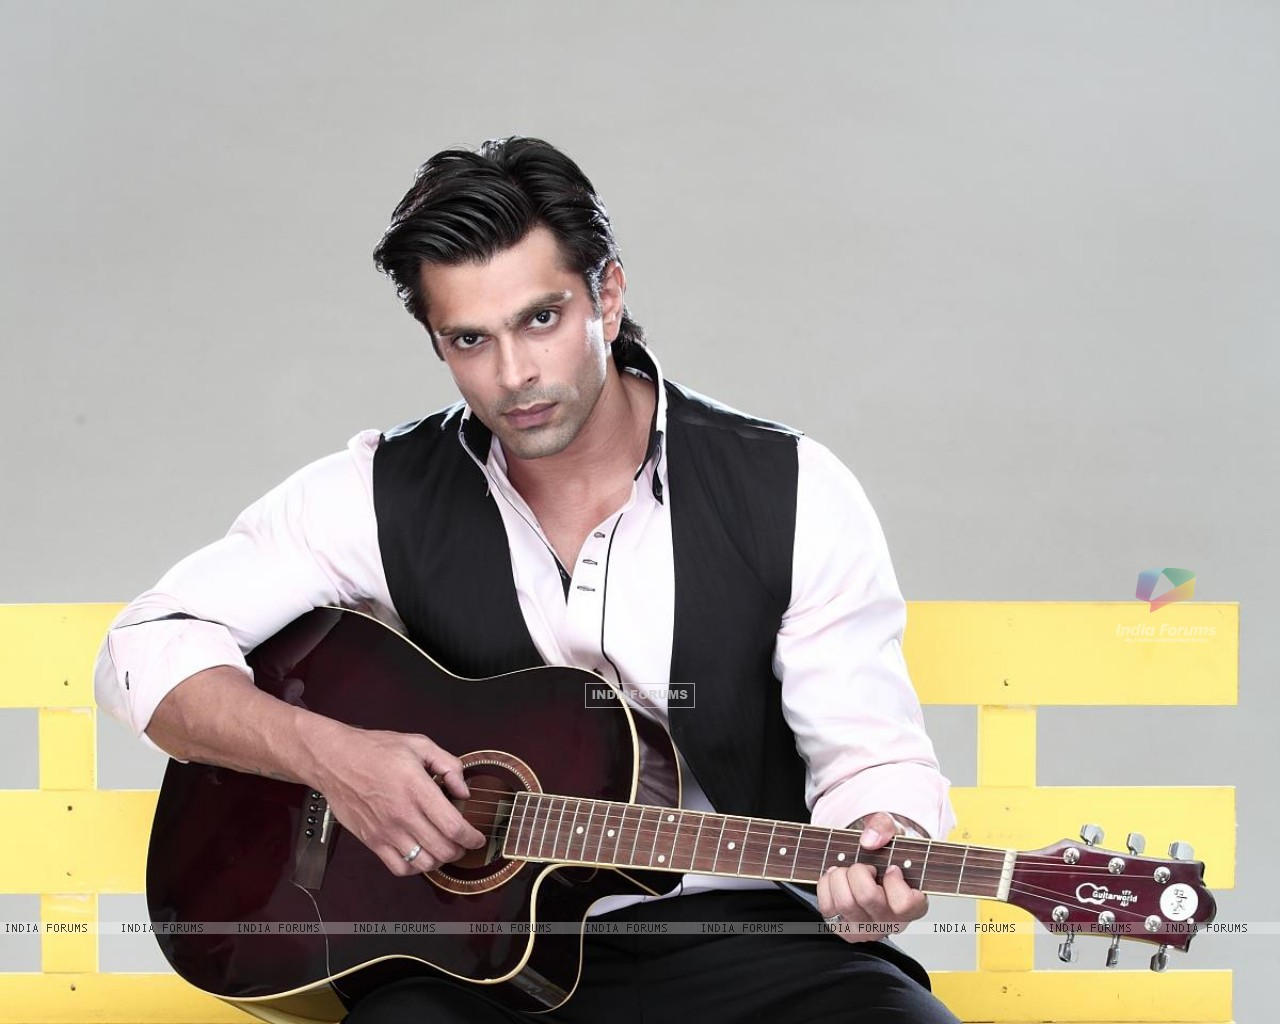 Karan Singh Grover in Qubool hai - Wallpaper (Size:1280x1024)